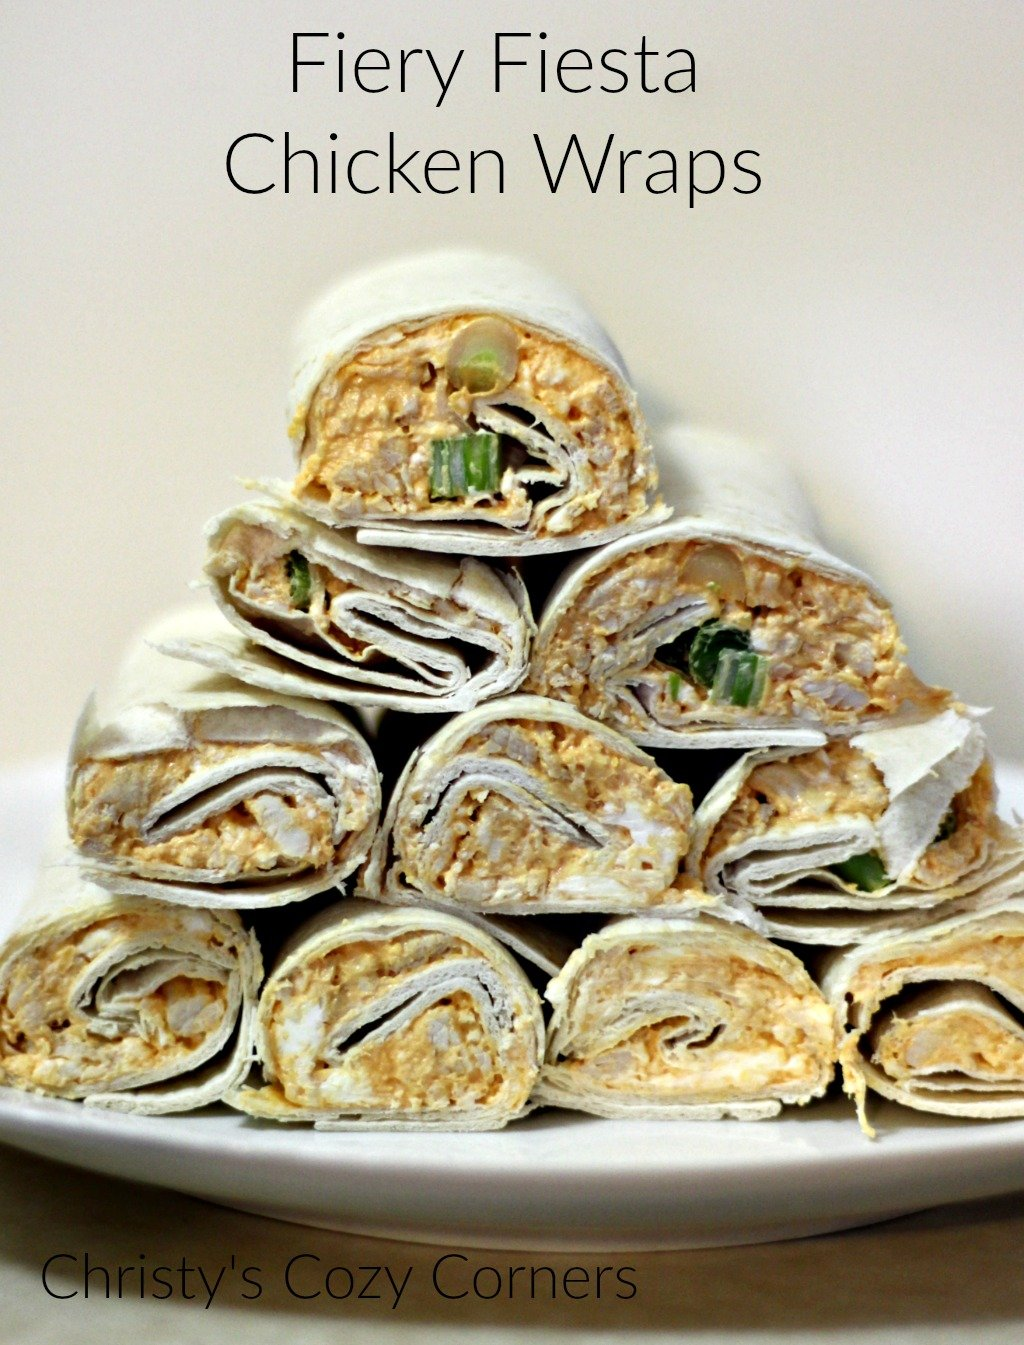 Fiery Fiesta Buffalo Chicken Wraps